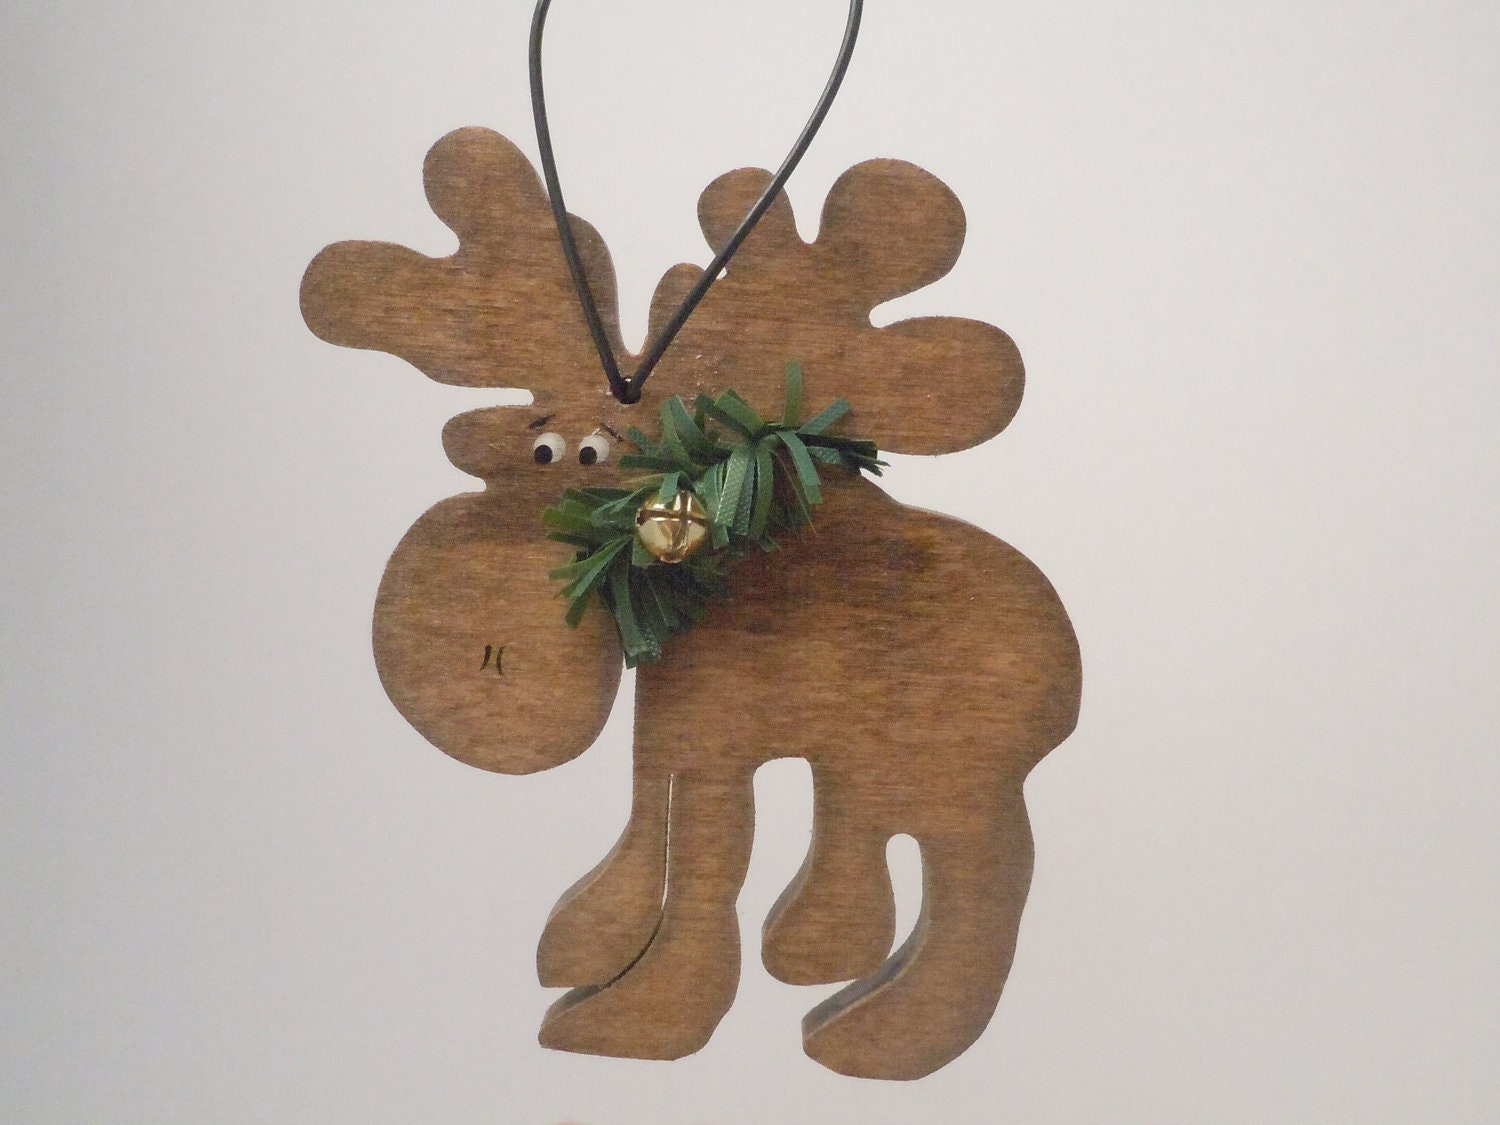 Wood rustic moose ornament